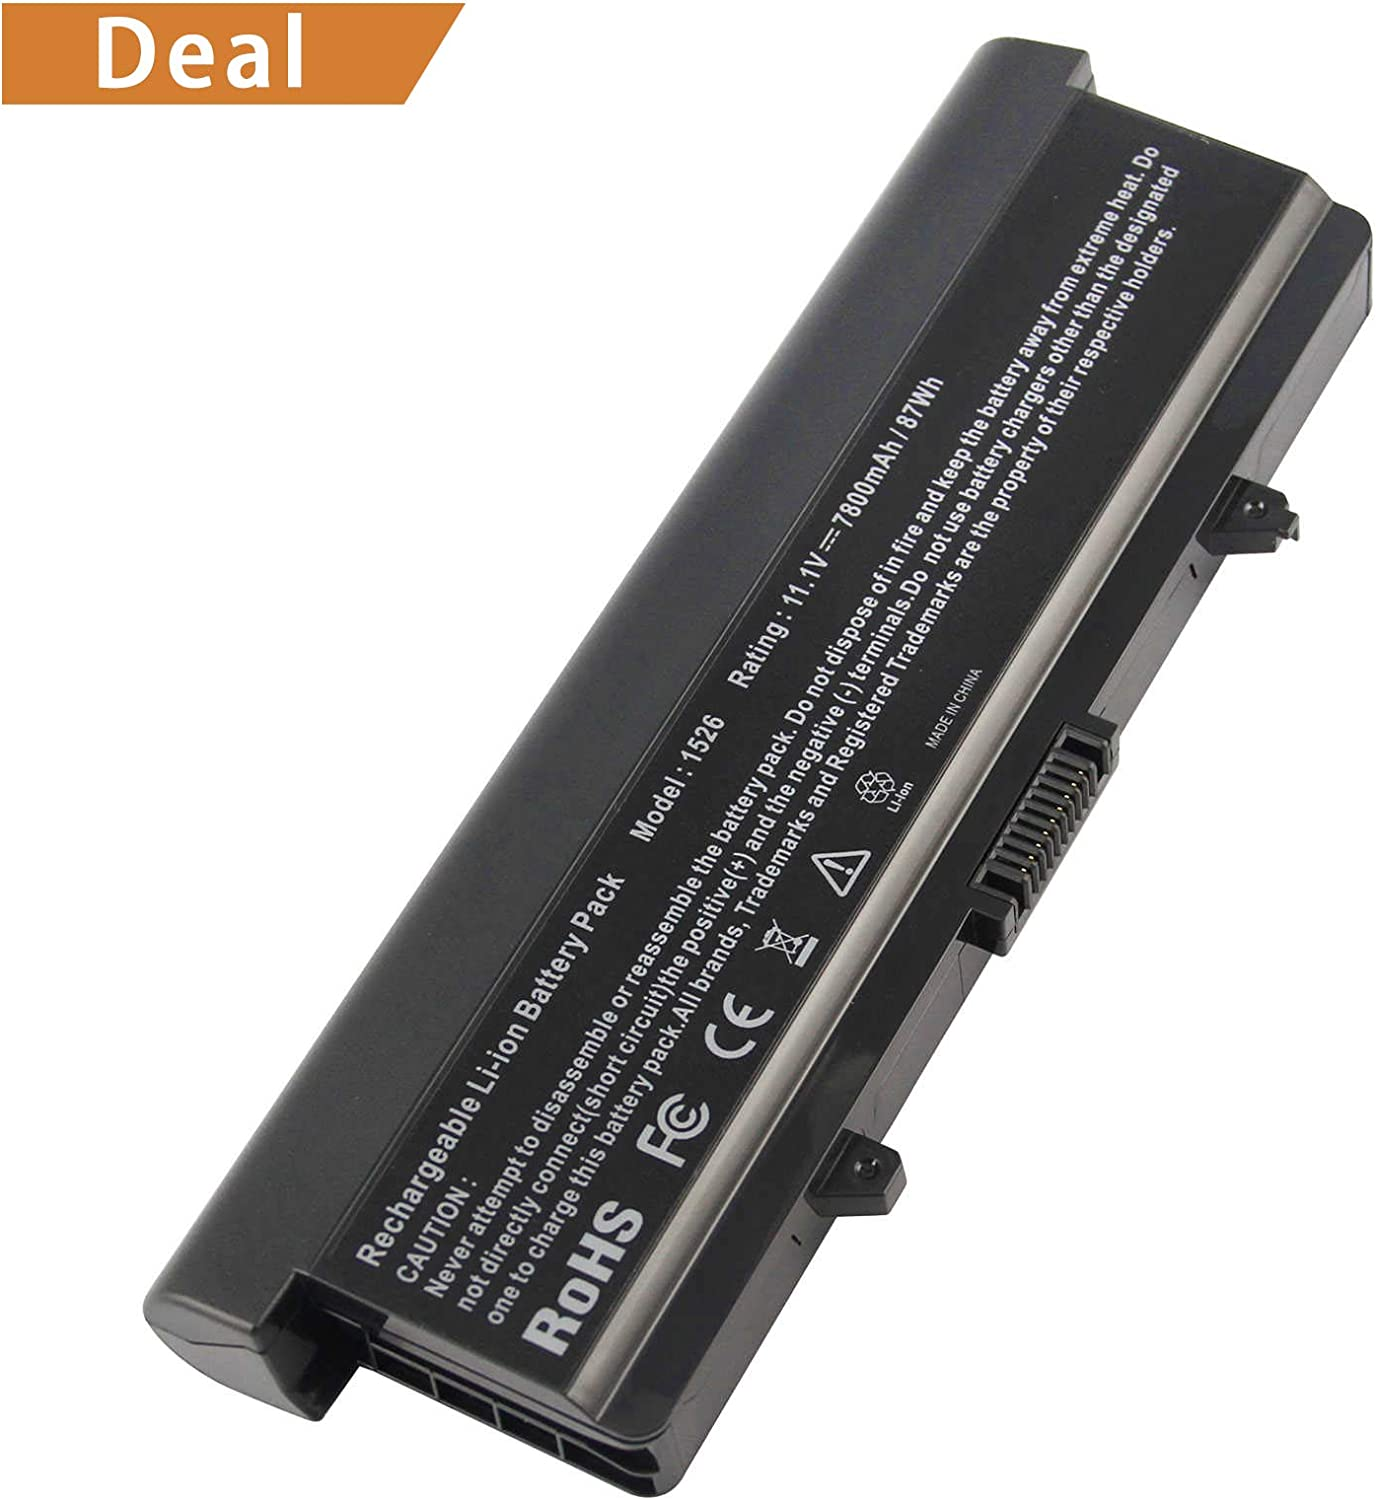 Fancy Buying Laptop Battery Replacement for GW240 Dell Inspiron 1525 1545 New [9 Cells 11.1V 7800mAh/87Wh]